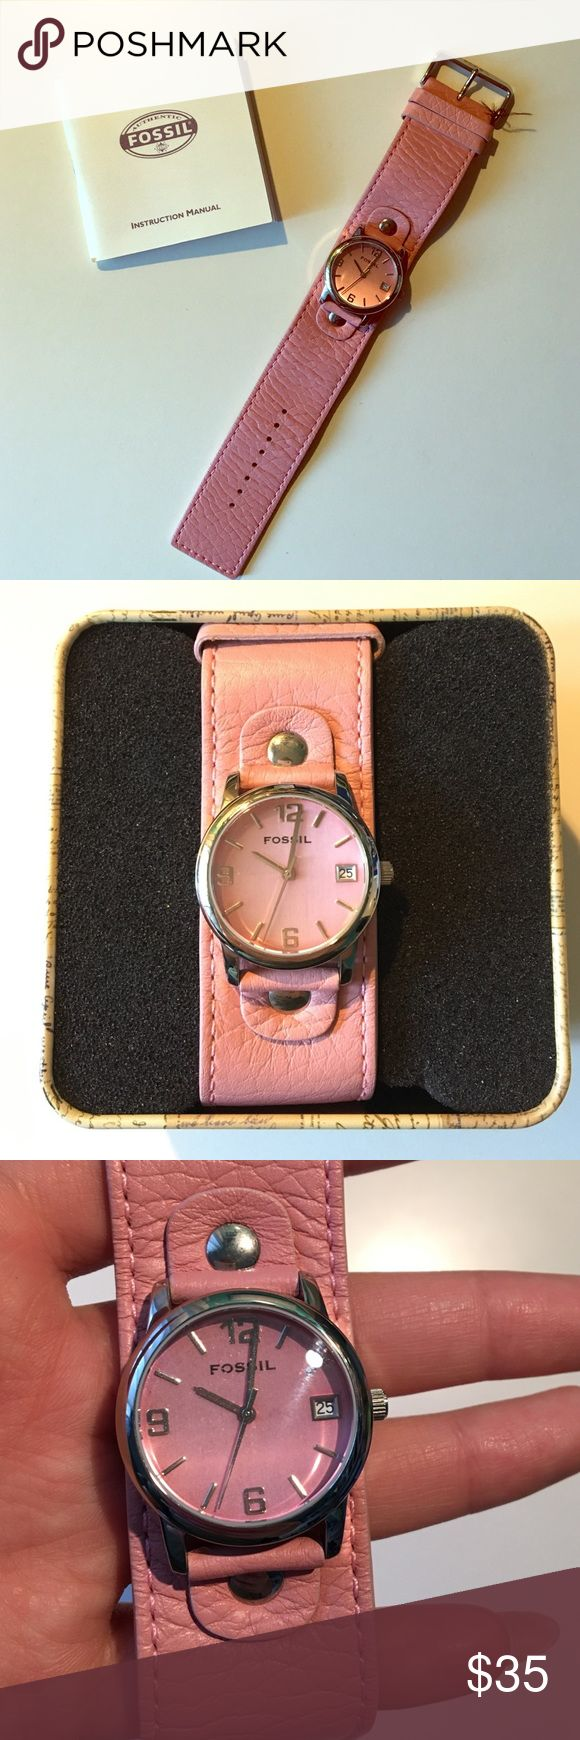 Fossil watch Women's pink leather Fossil watch all it needs are batteries. It's in great condition! Fossil Accessories Watches